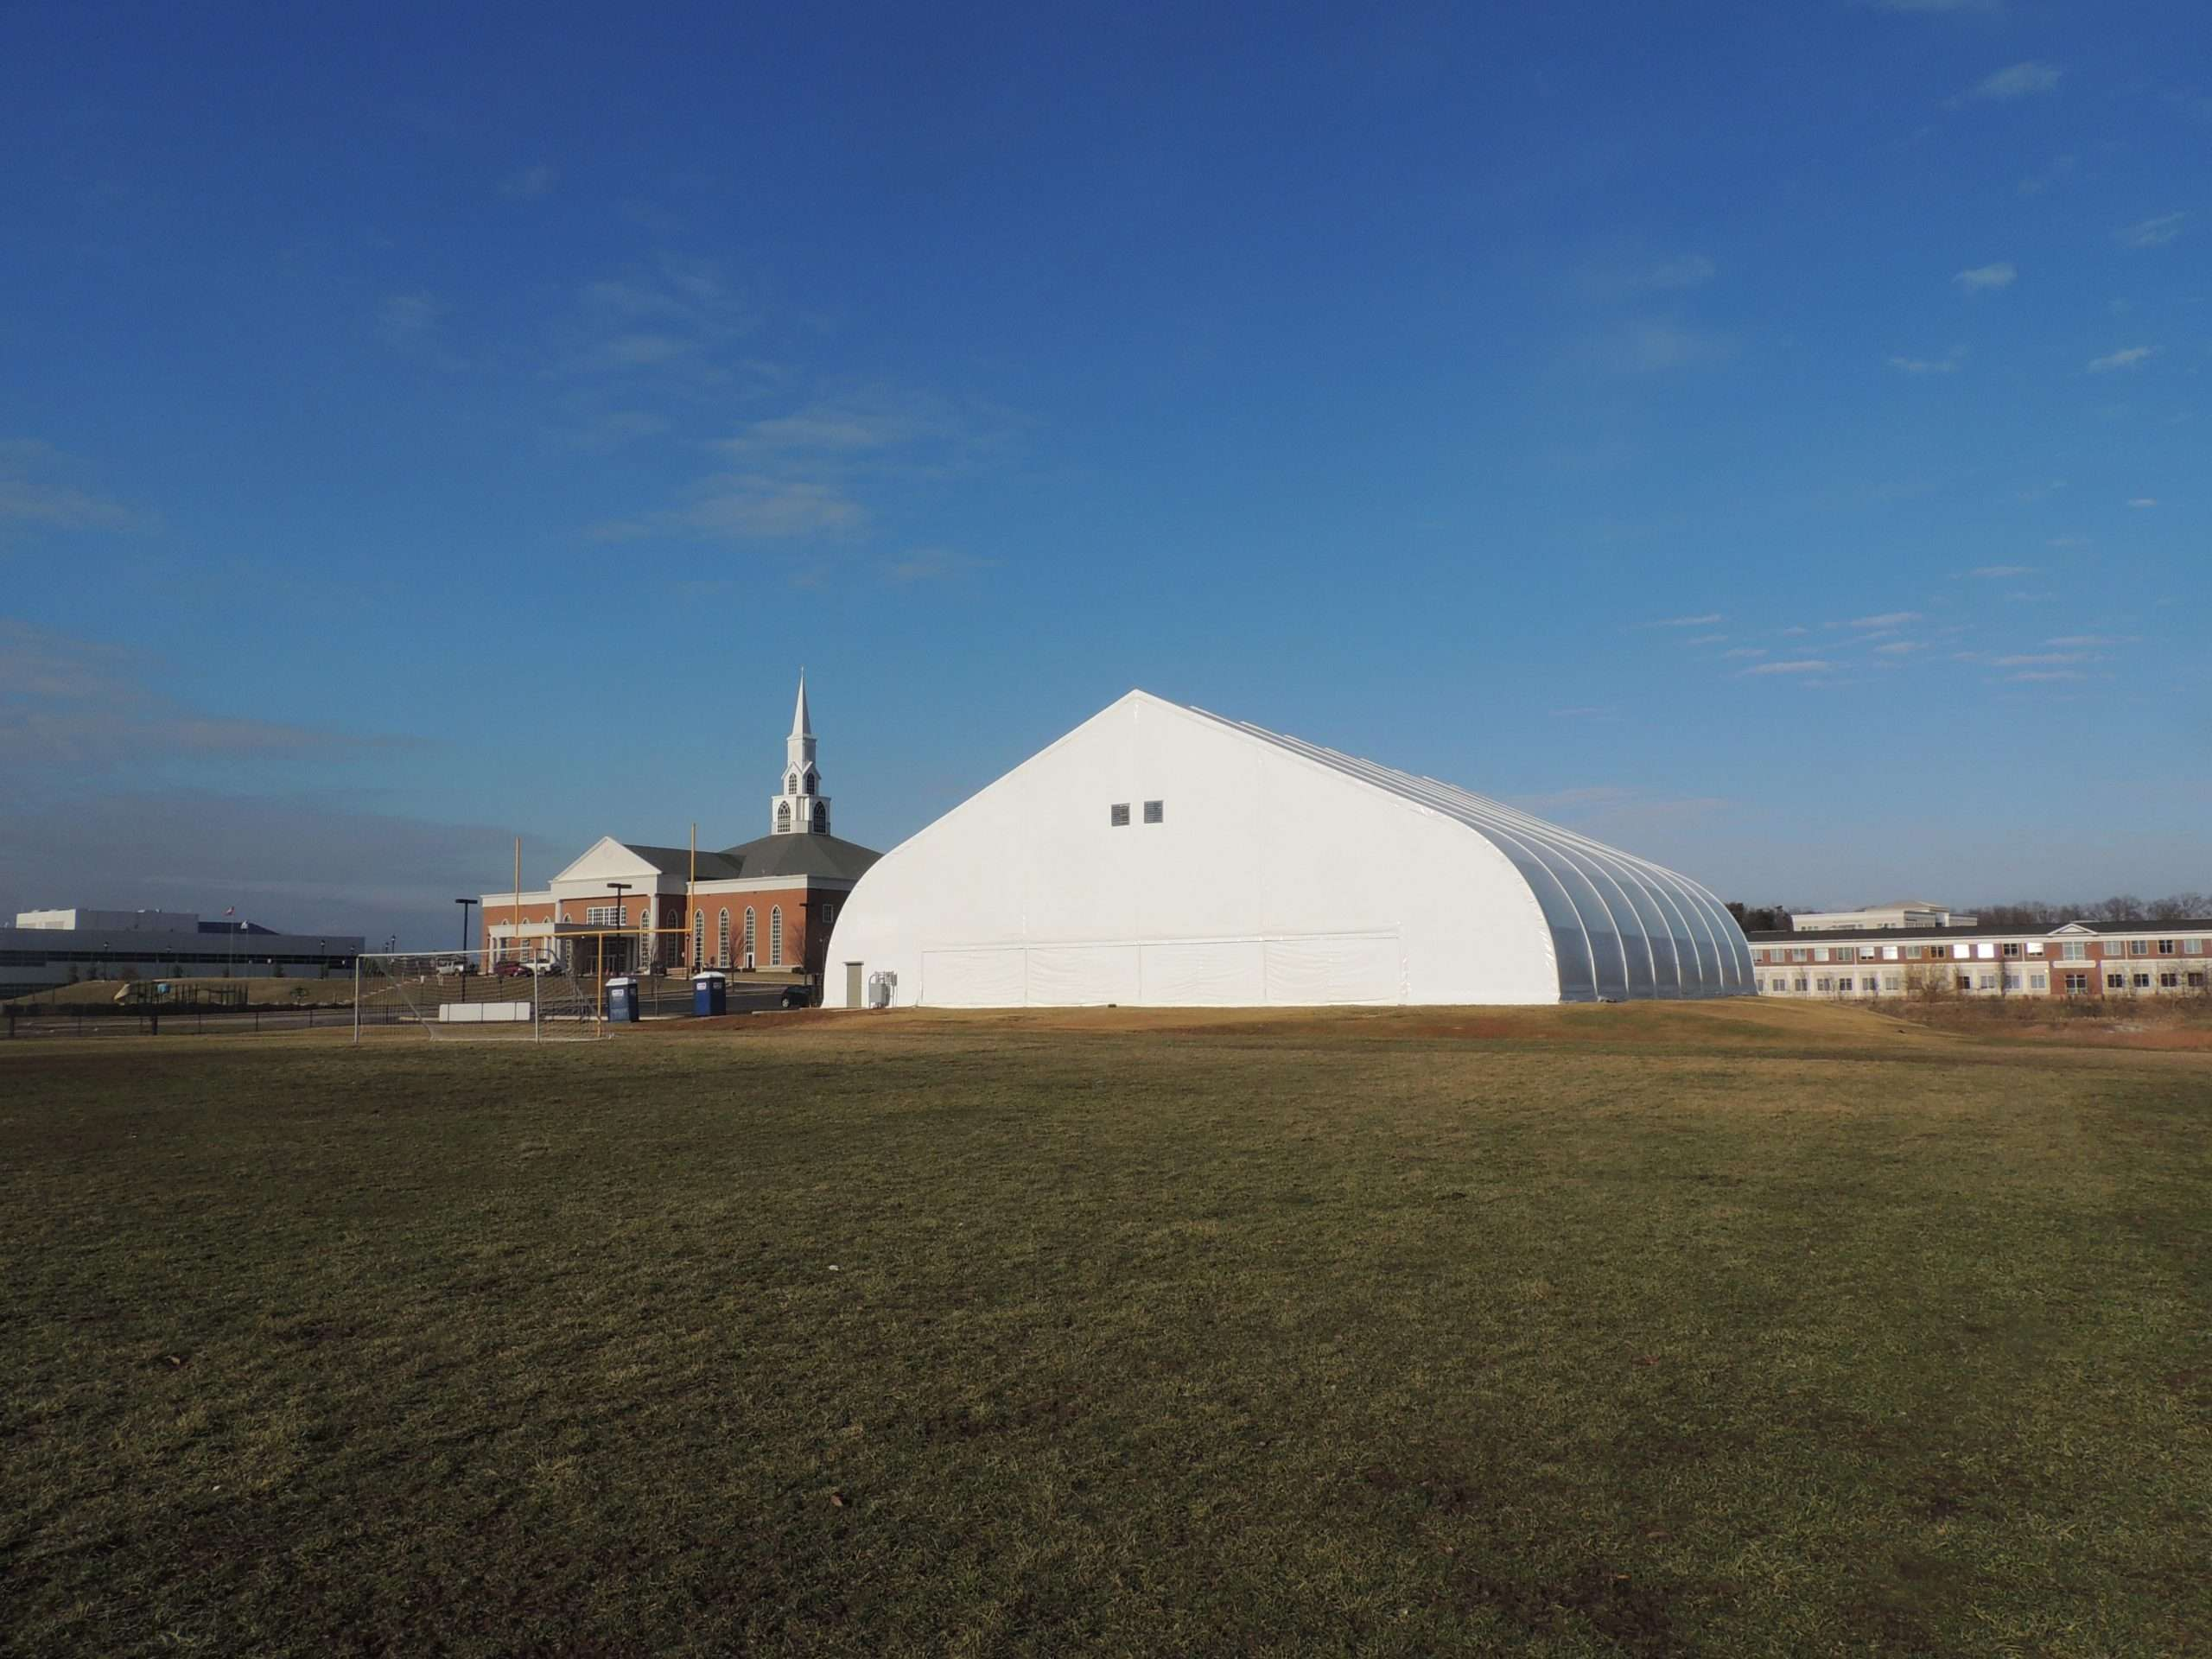 temporary fabric church building next to a church building for holding special church events